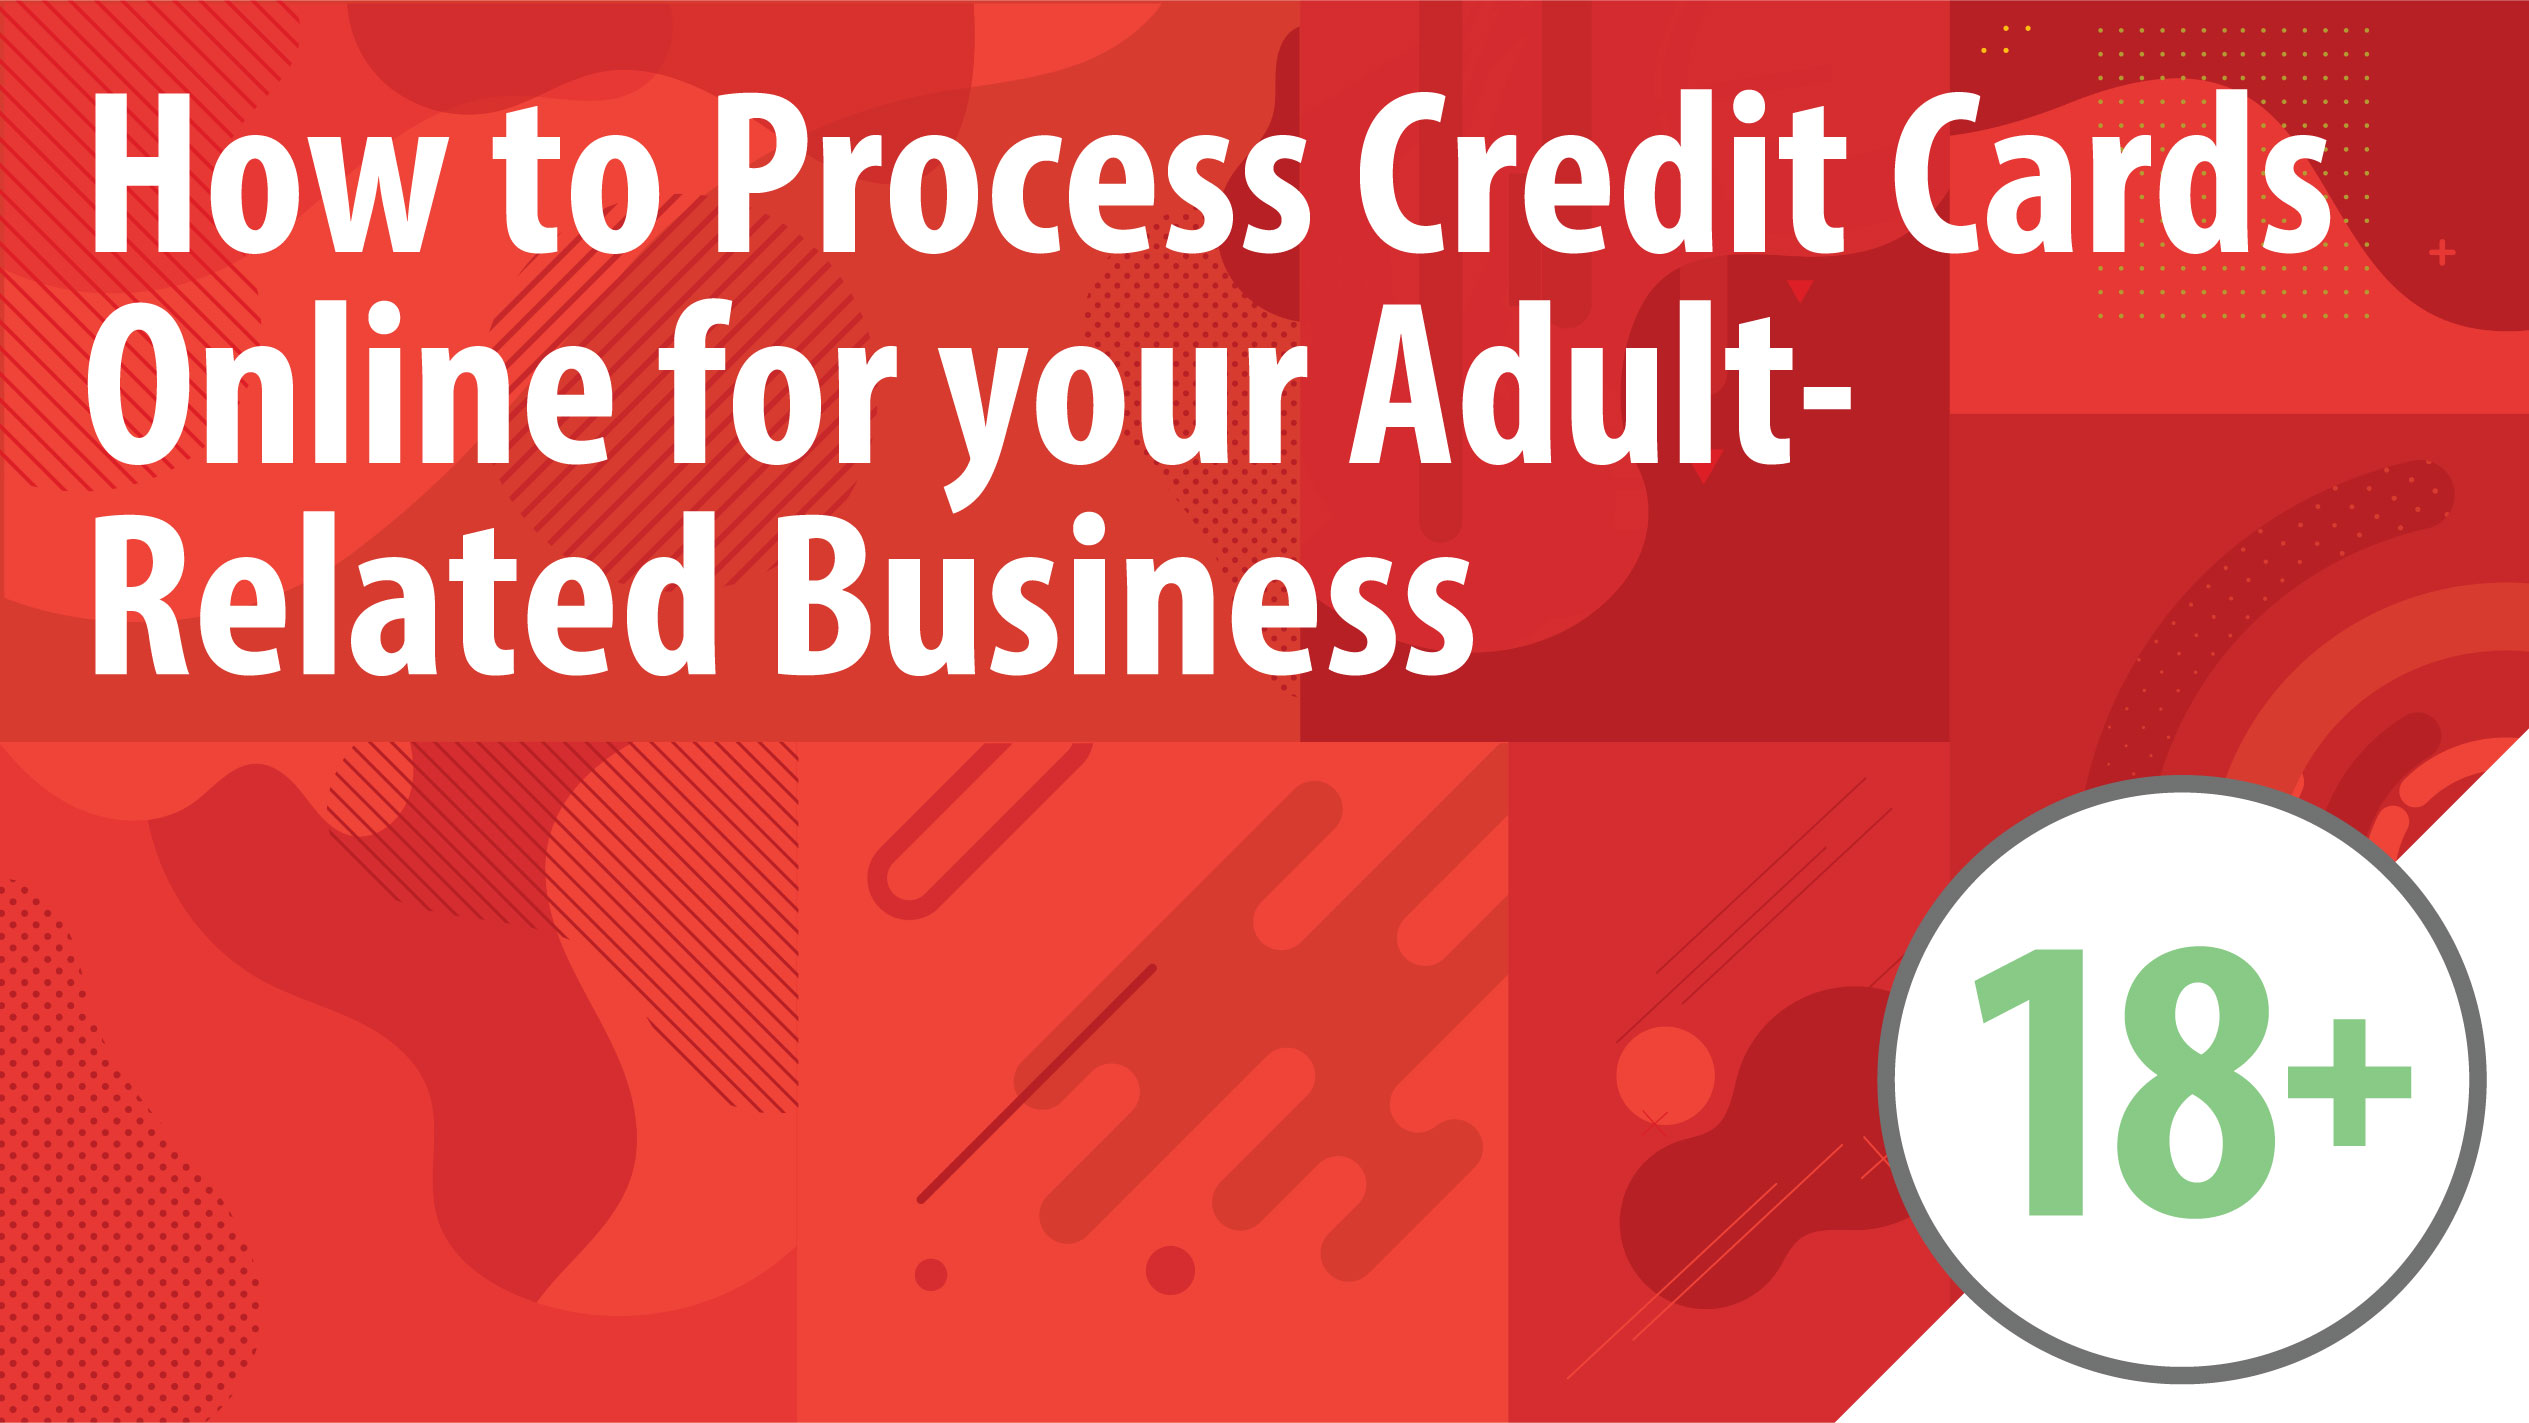 How to Process Credit Cards Online for your Adult-Related Business